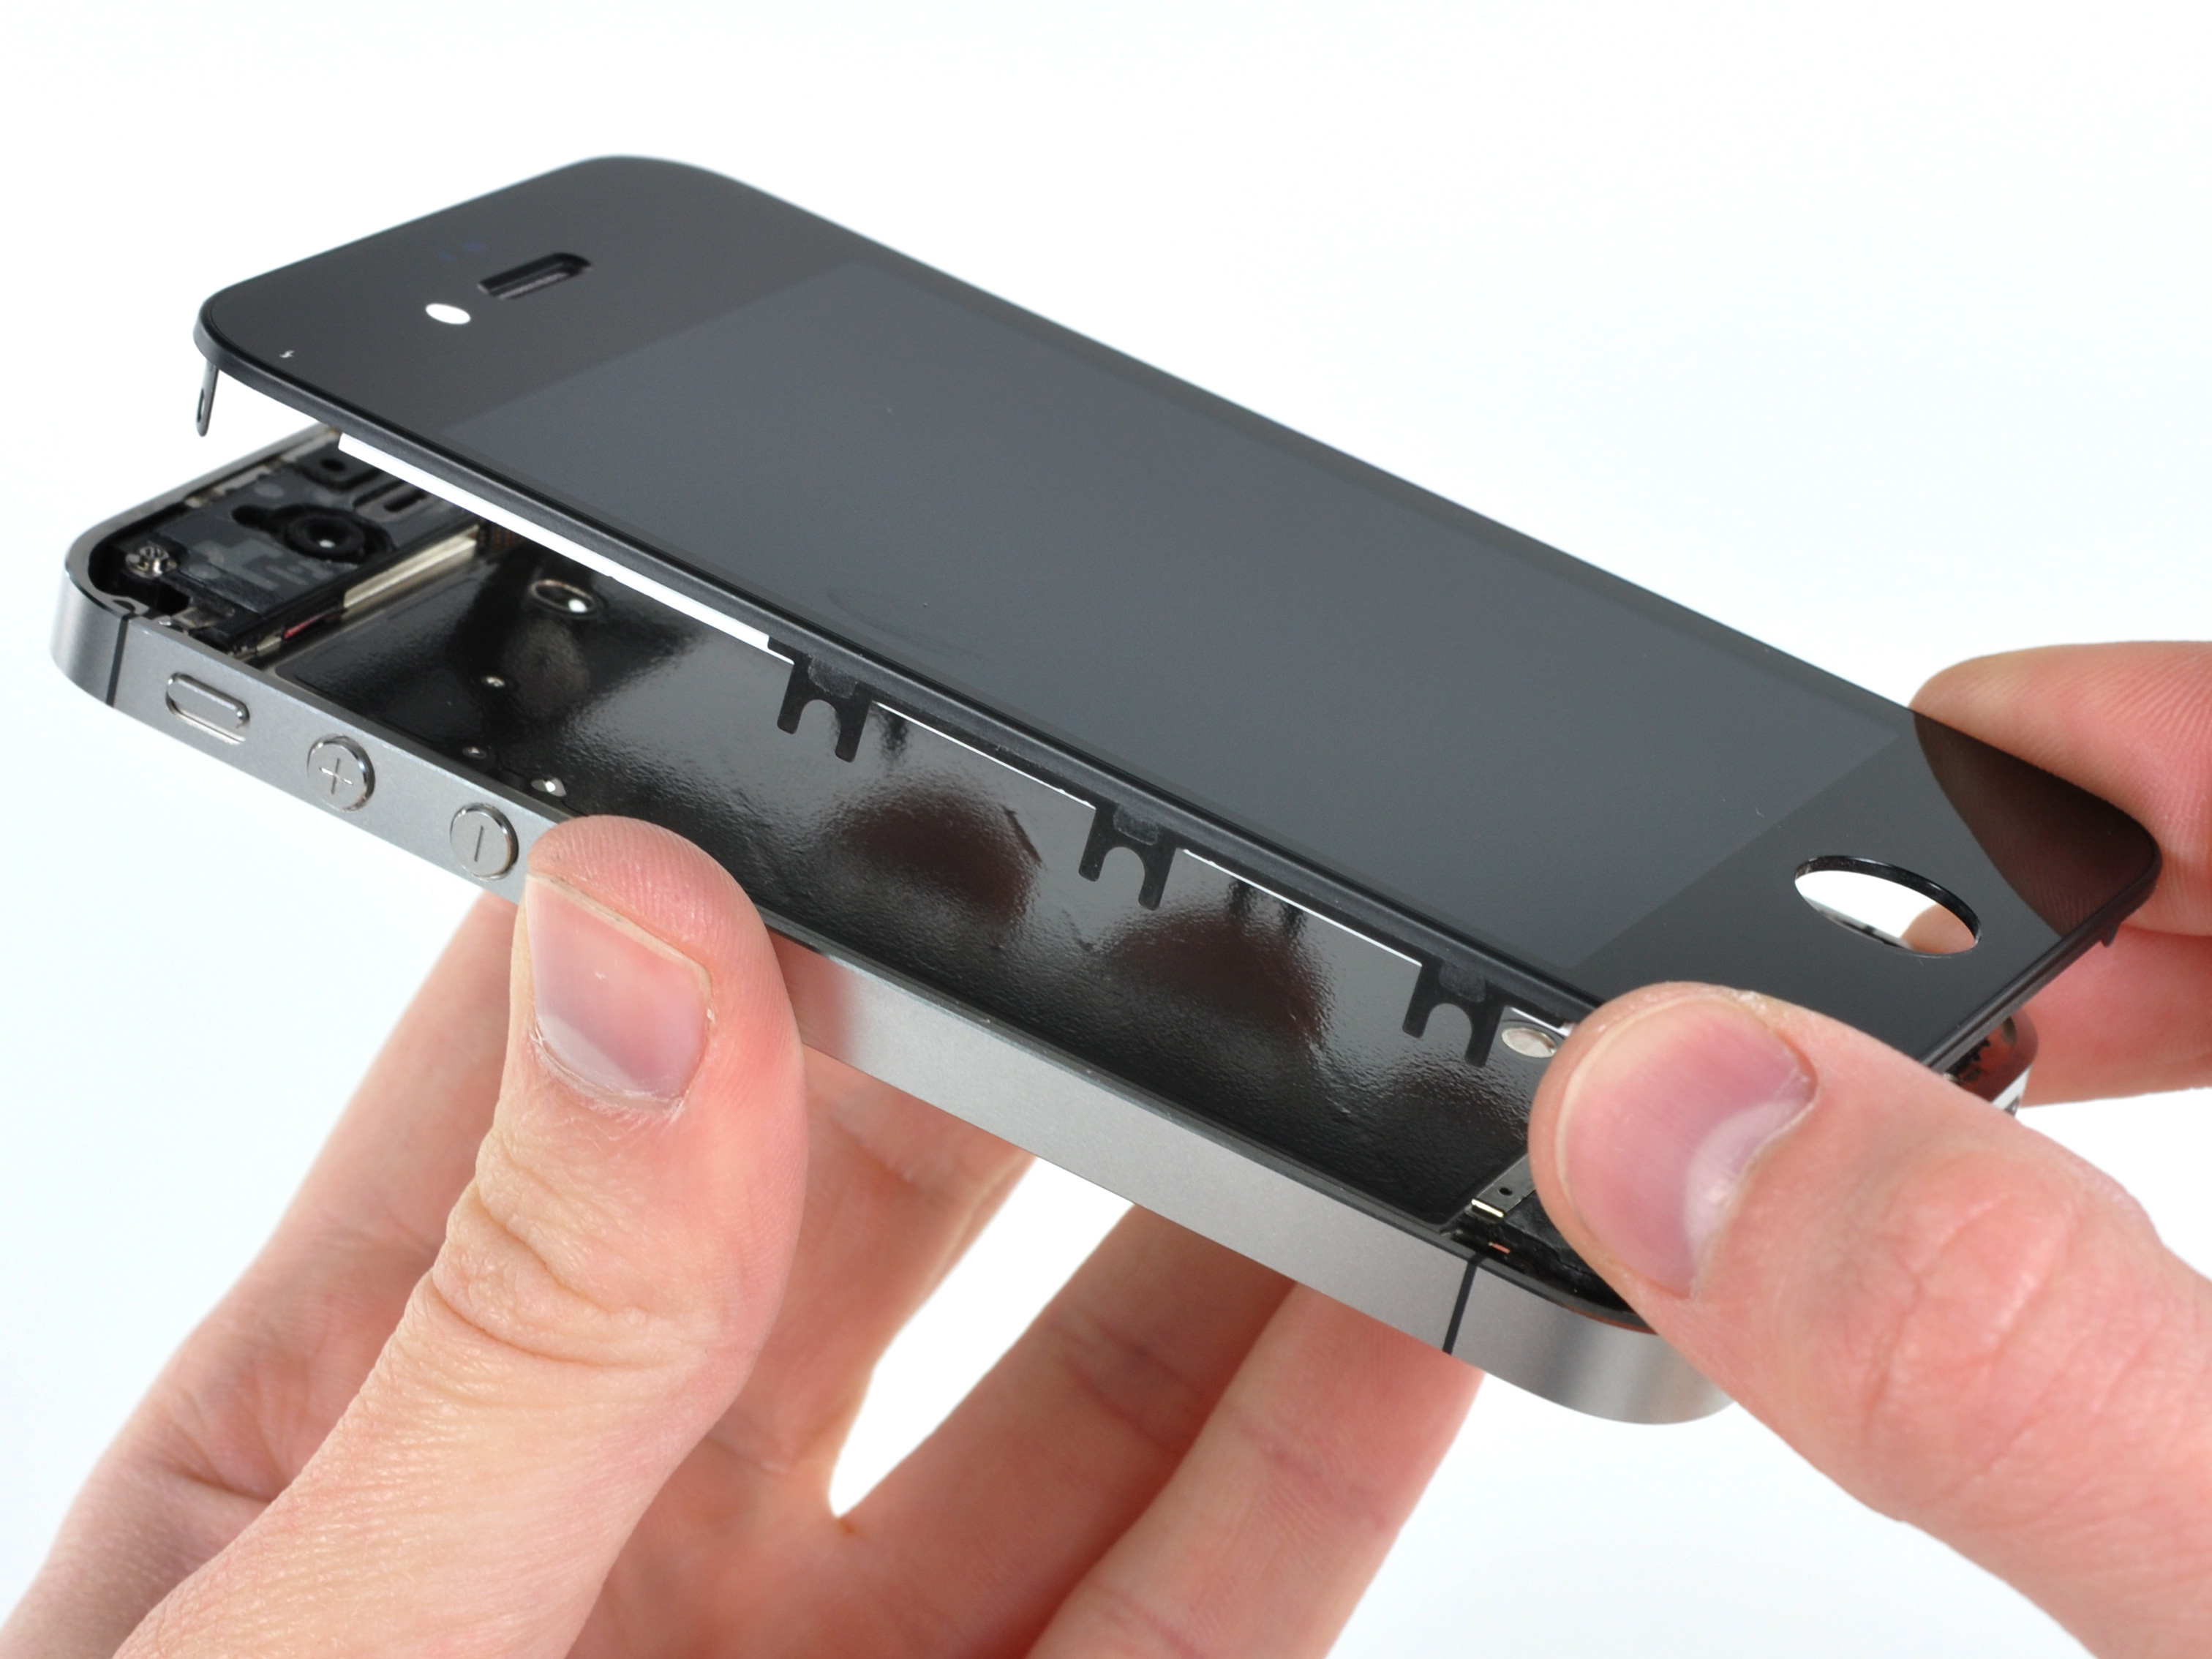 iphone 4s screen repair iphone 4s display assembly replacement ifixit repair guide 2162